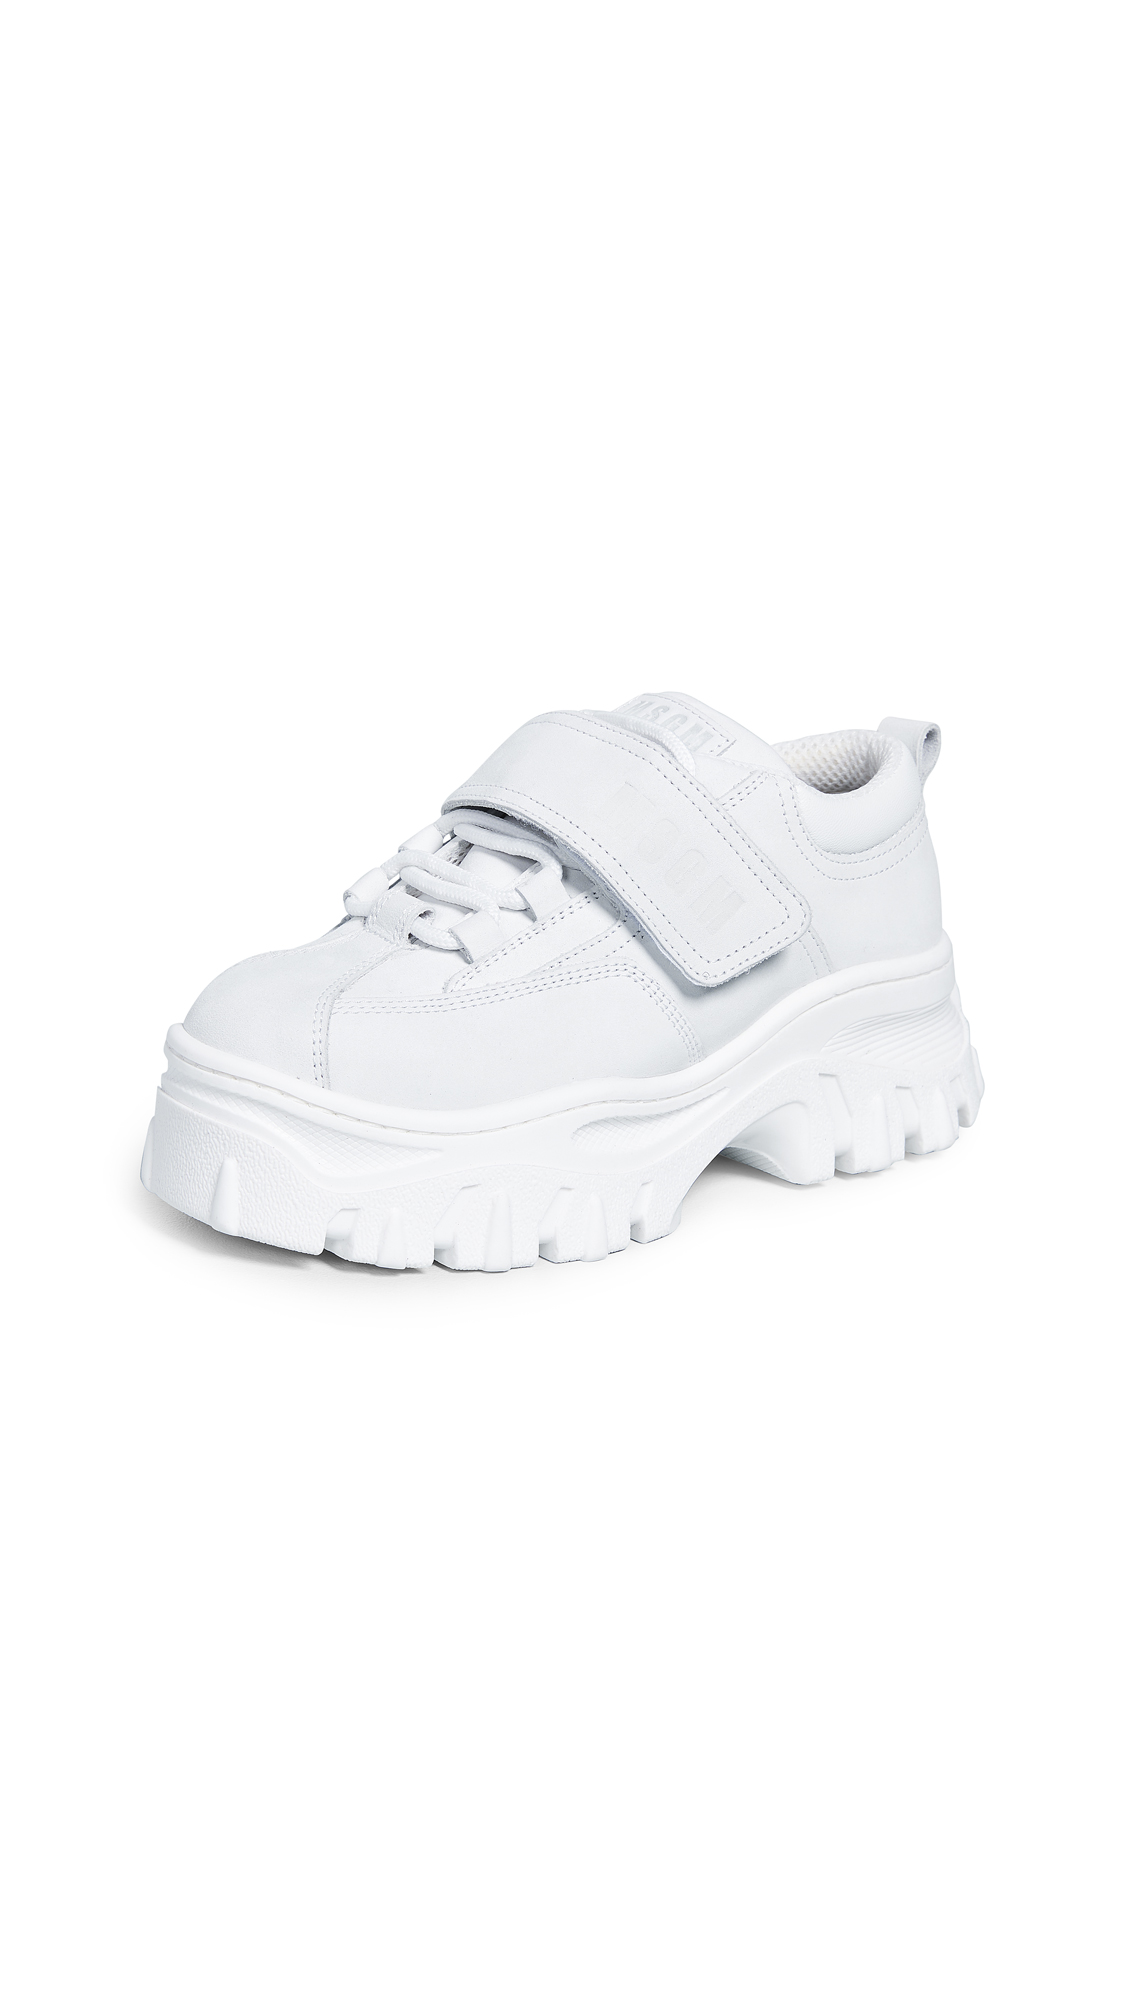 Chunky Strap Sneakers in White